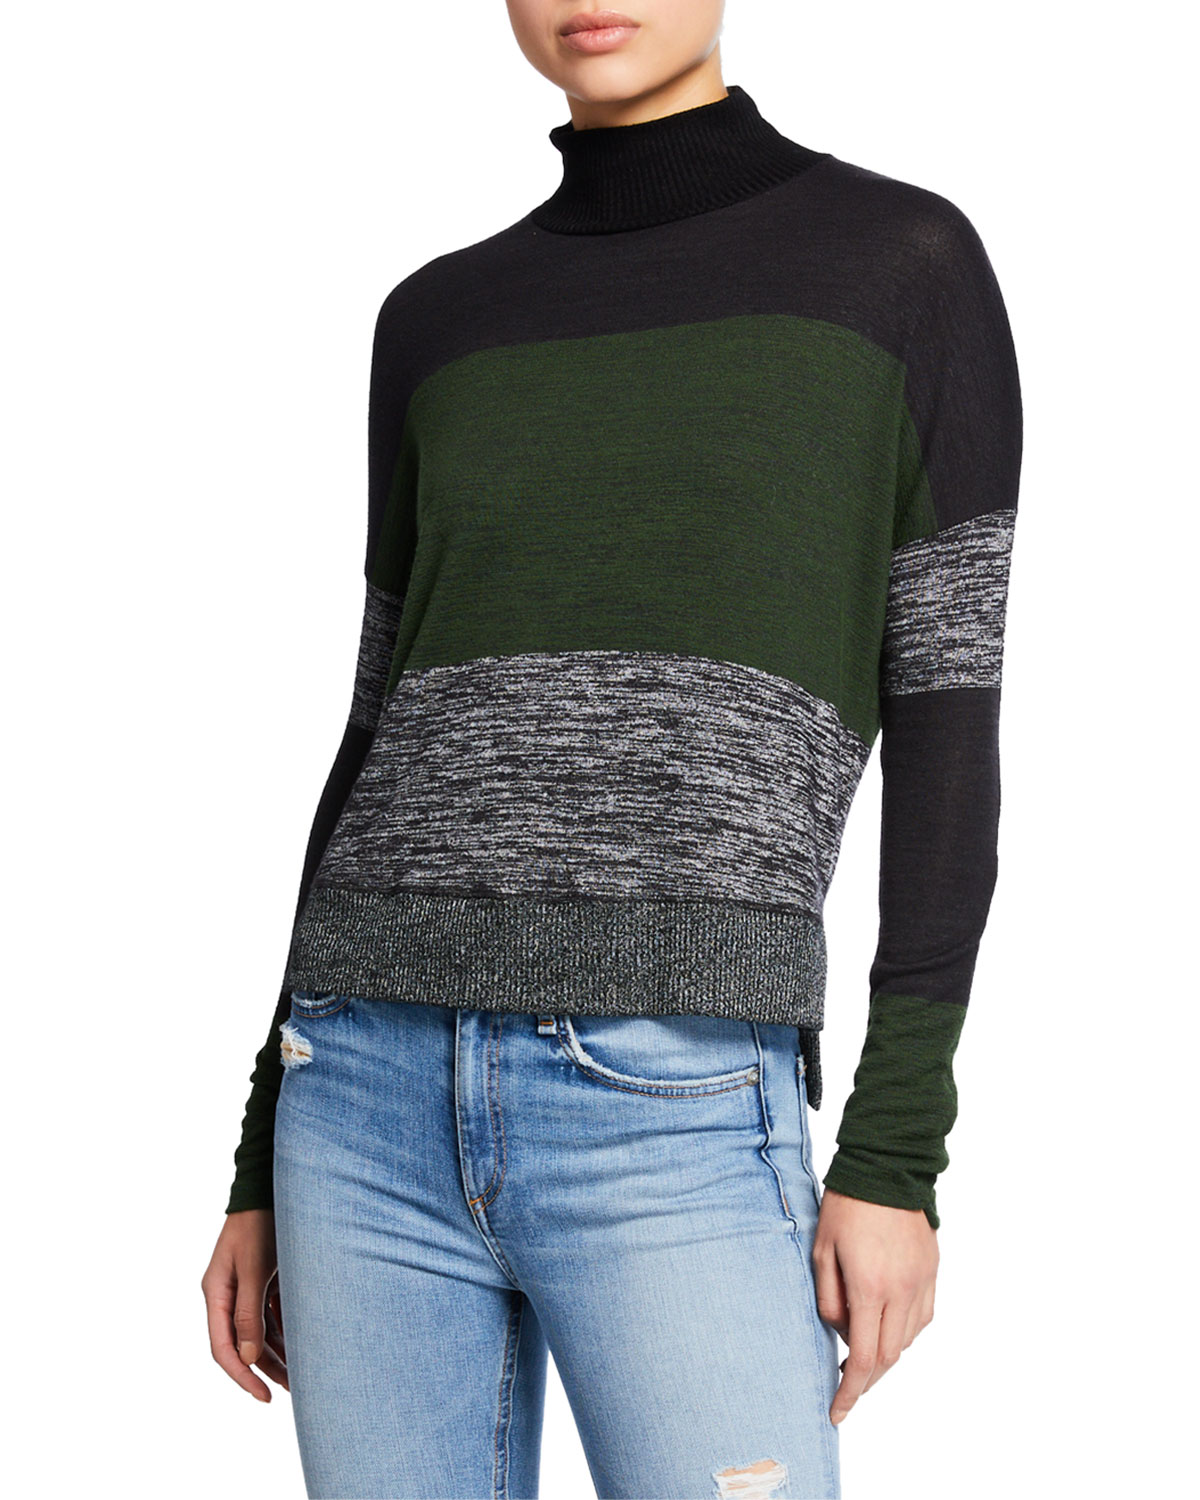 Bowery Striped High-Low Turtleneck Sweater in Emerald Strp